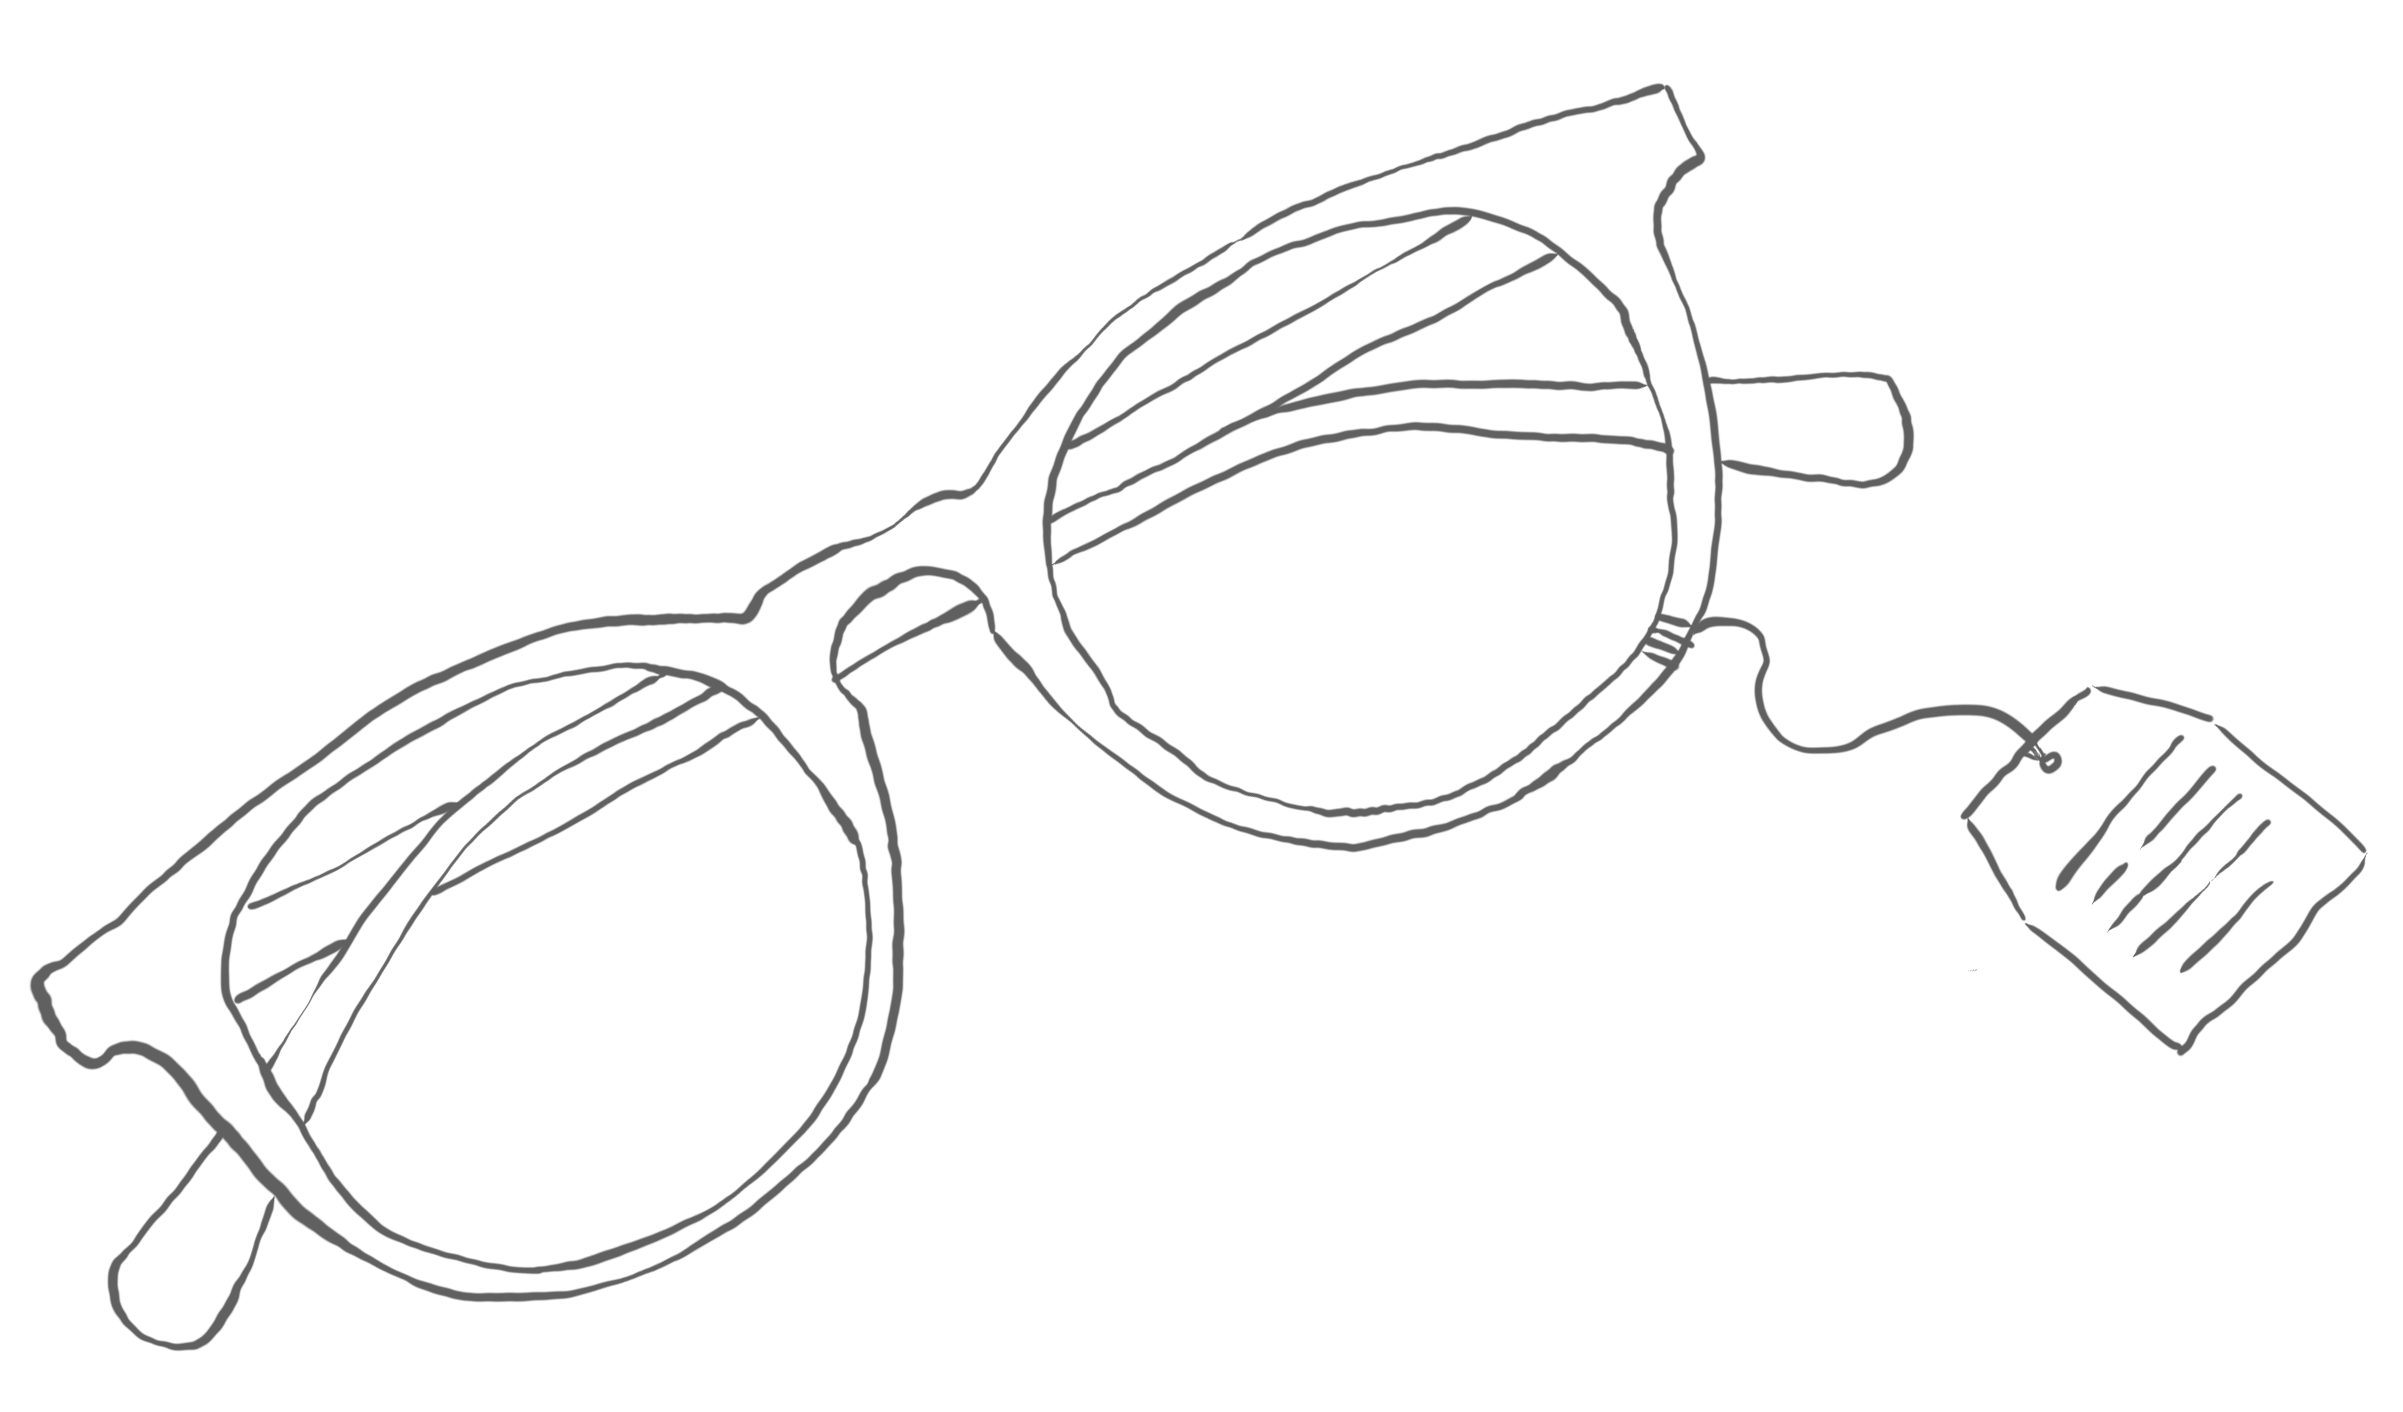 Shades drawing sketch. Glasses at getdrawings com